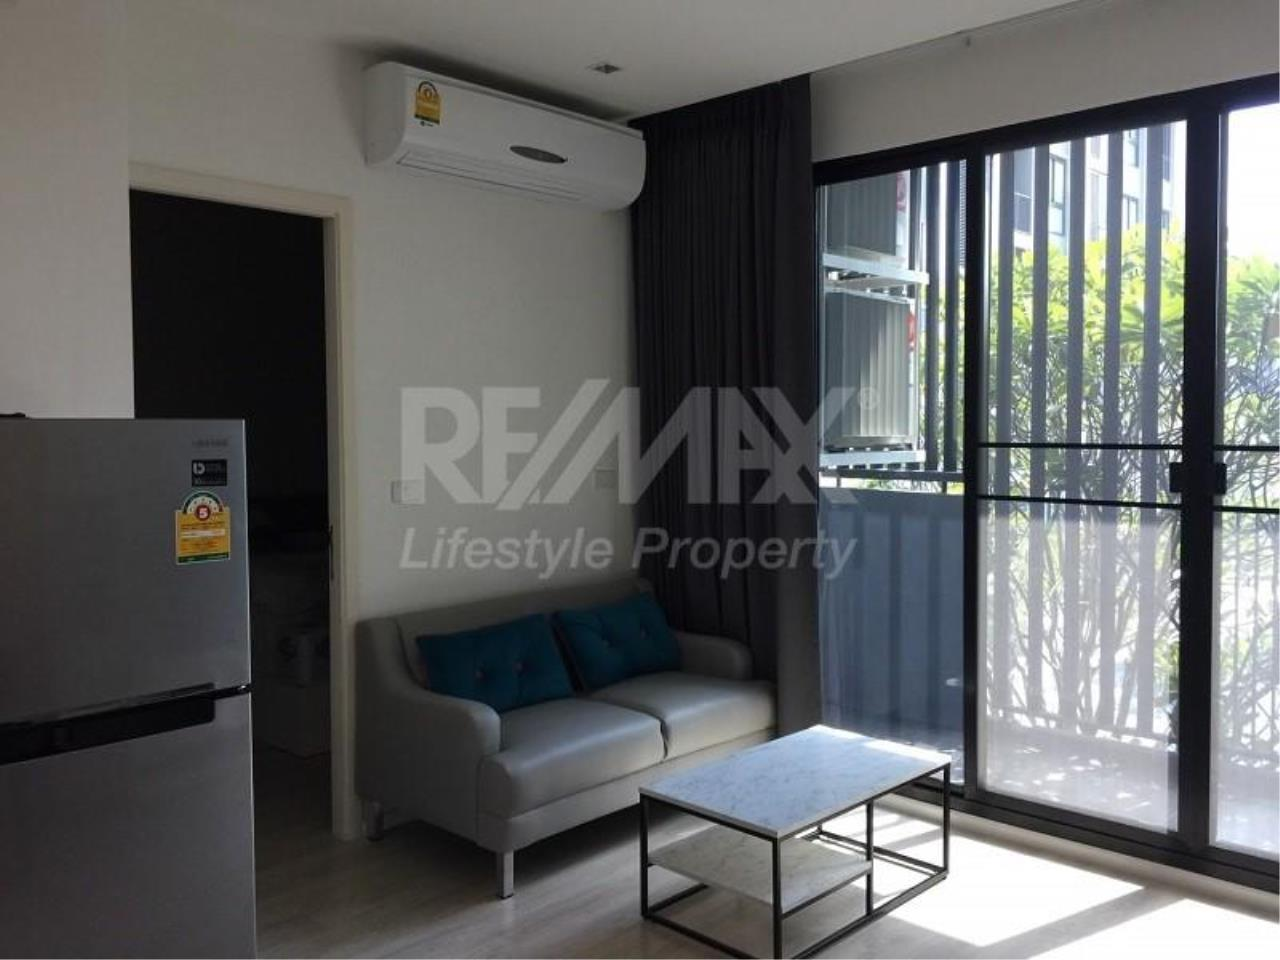 RE/MAX LifeStyle Property Agency's Quinn Condo Ratchada 9